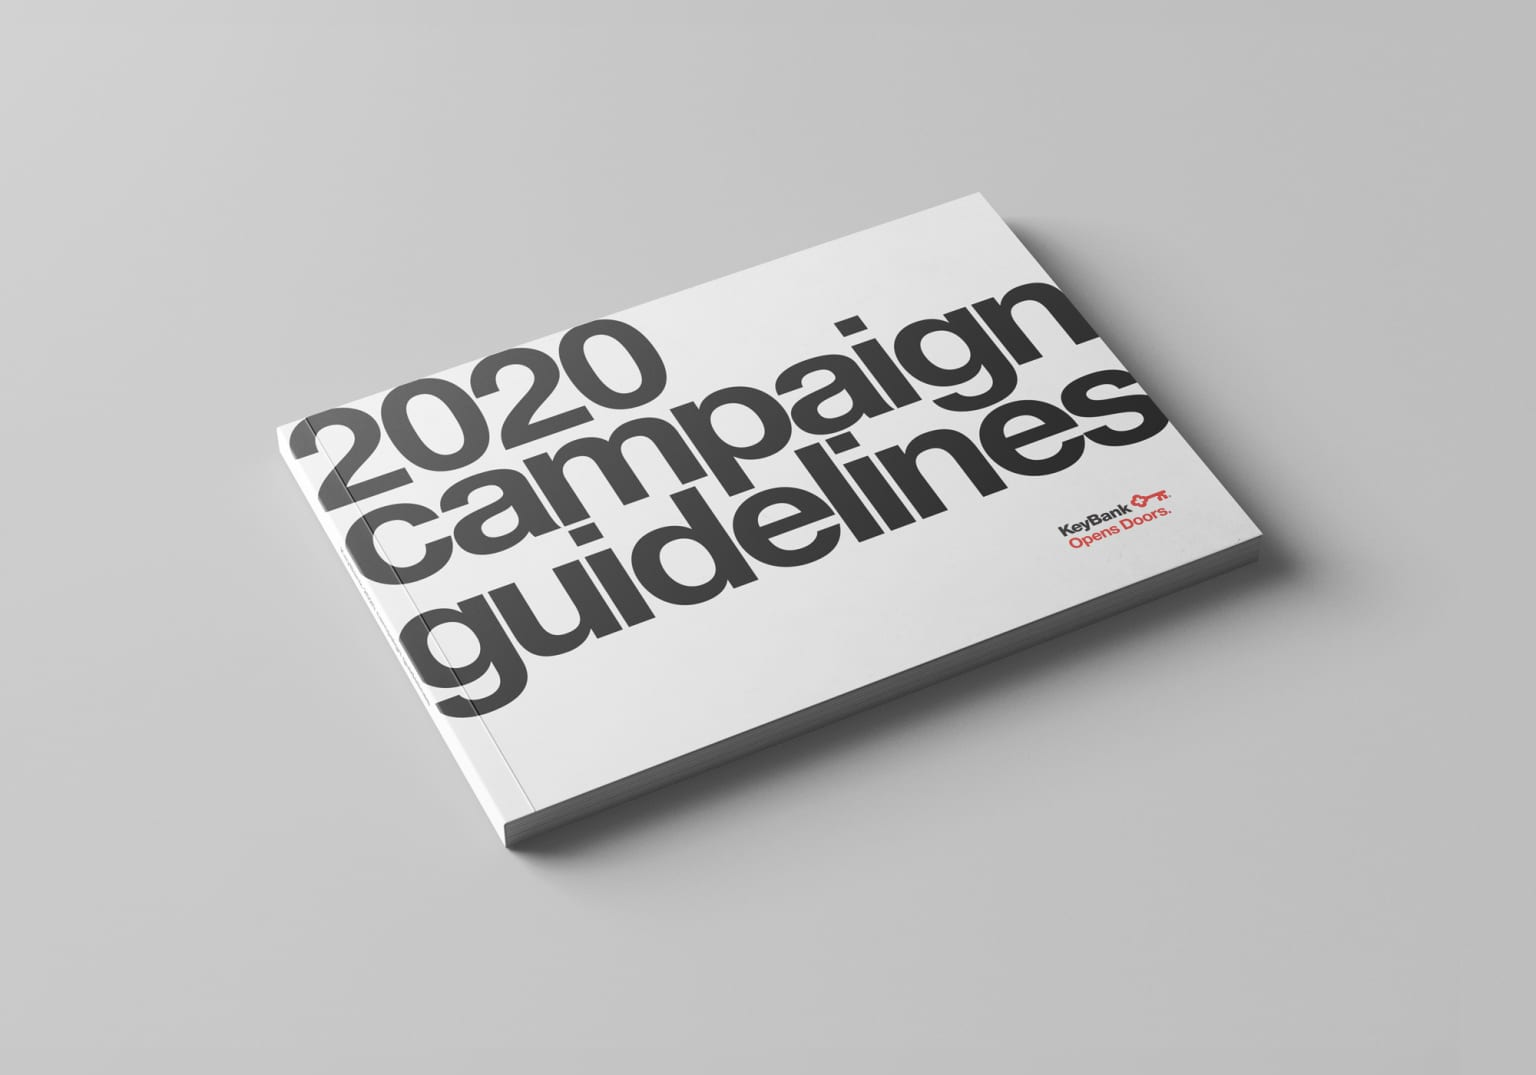 KeyBank Brand Guidelines